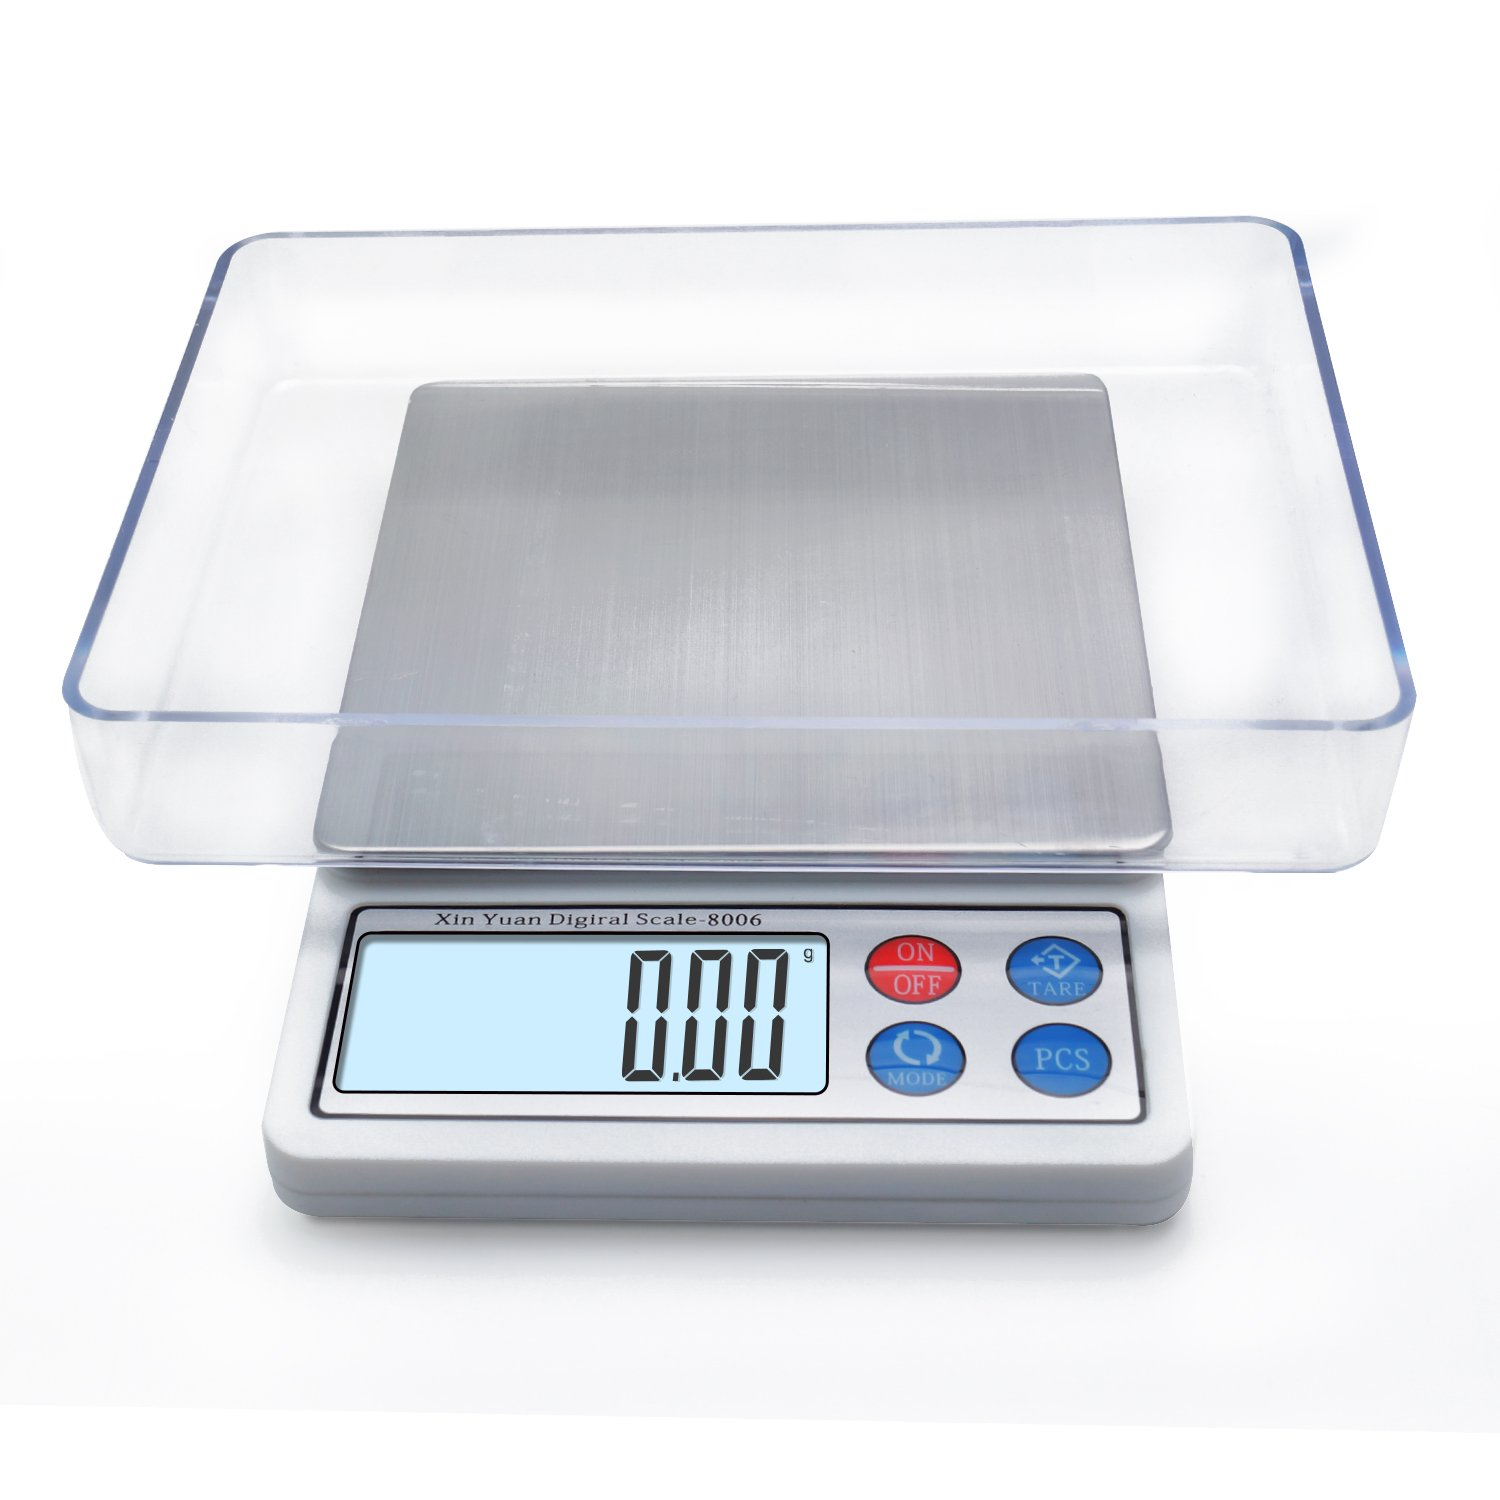 Digital Kitchen Scale, Mini Gram Jewelry Food Scale 600g/0.01g, Toprime High Precision Pocket Scale with LCD display and 1 Tray, Stainless Steel, Power Saving